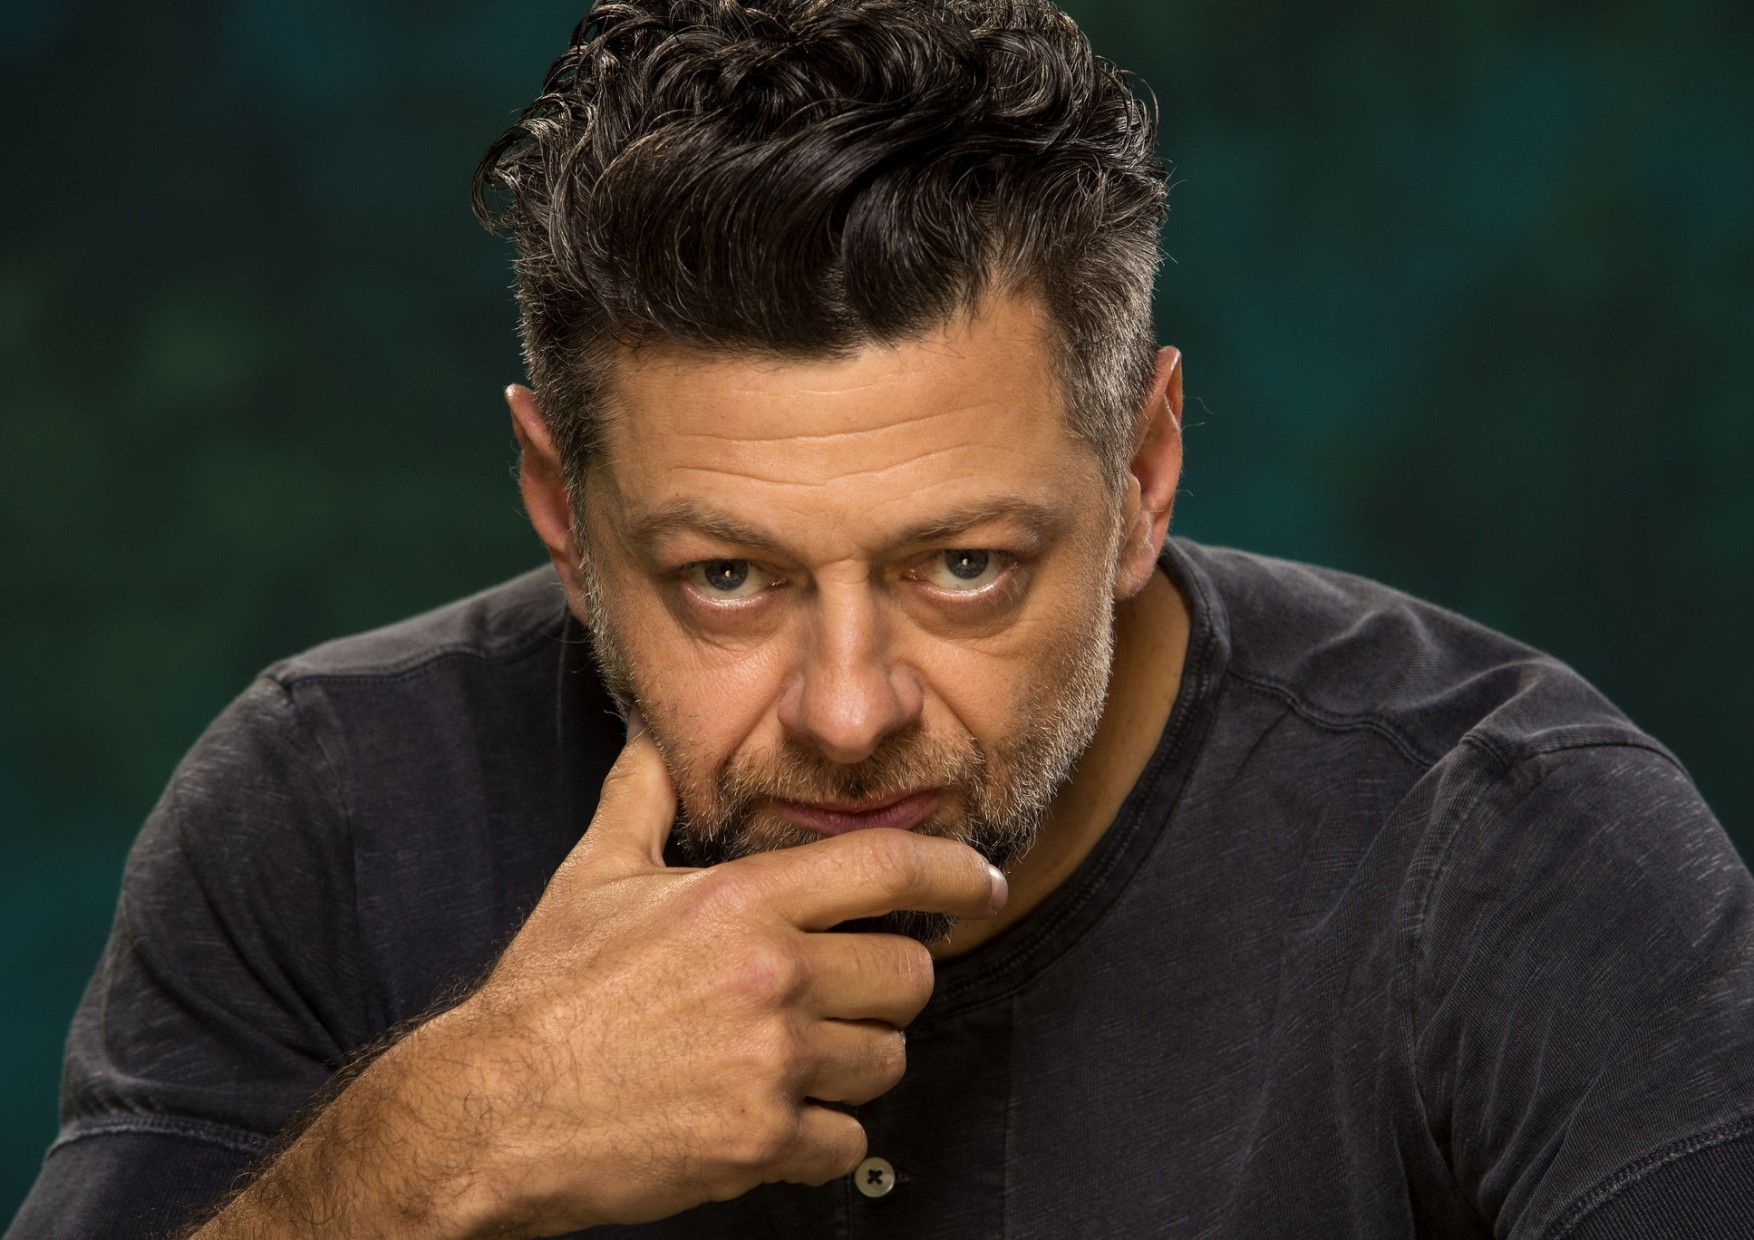 1754x1240 - Andy Serkis Wallpapers 22